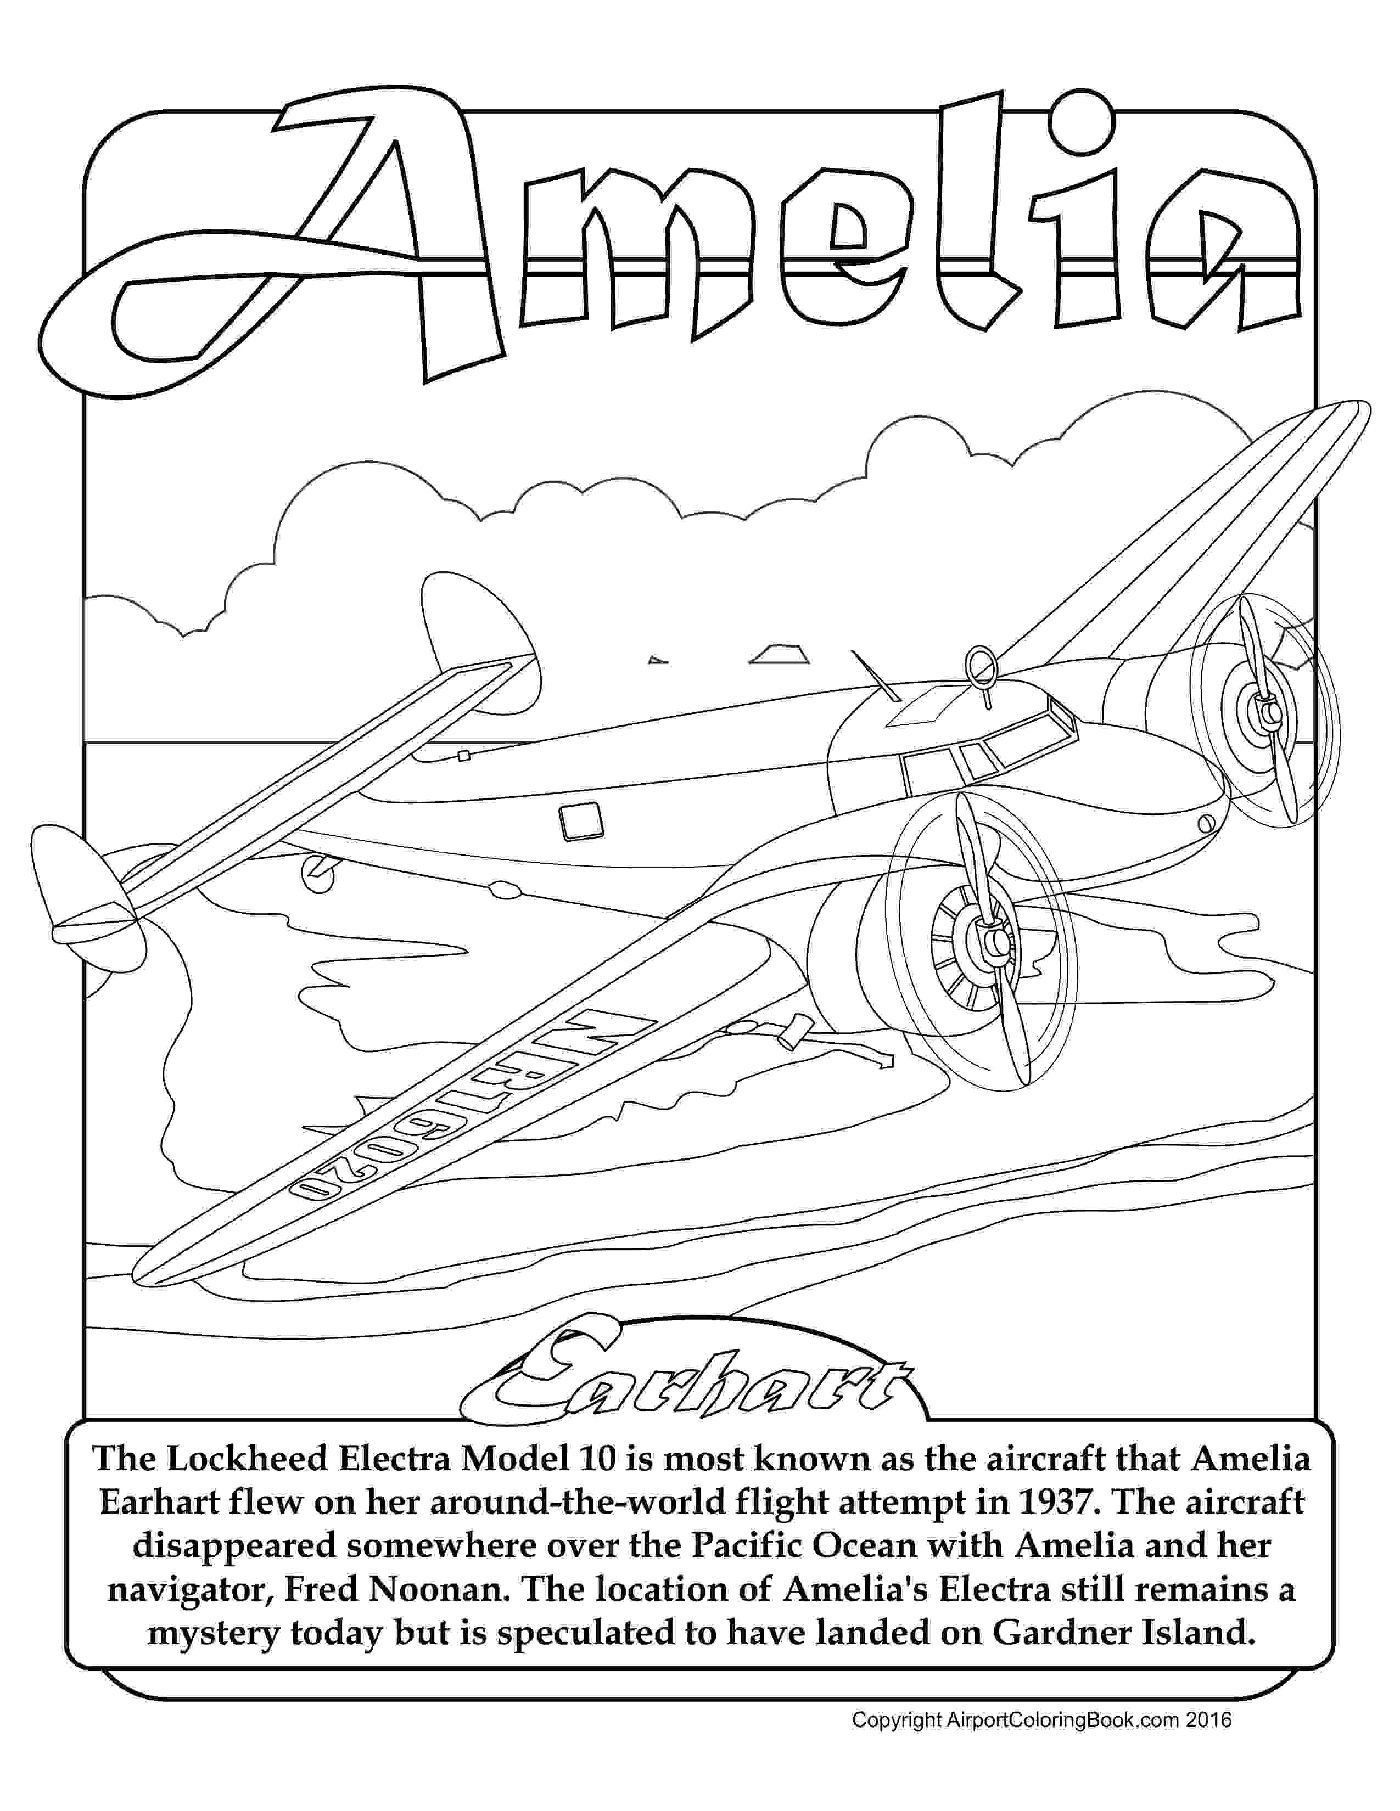 Amelia Earhart Coloring Pages Airport Coloring Book Amelia Earhart Lockhead Electra For Coloring Pages Coloring Books Bee Coloring Pages